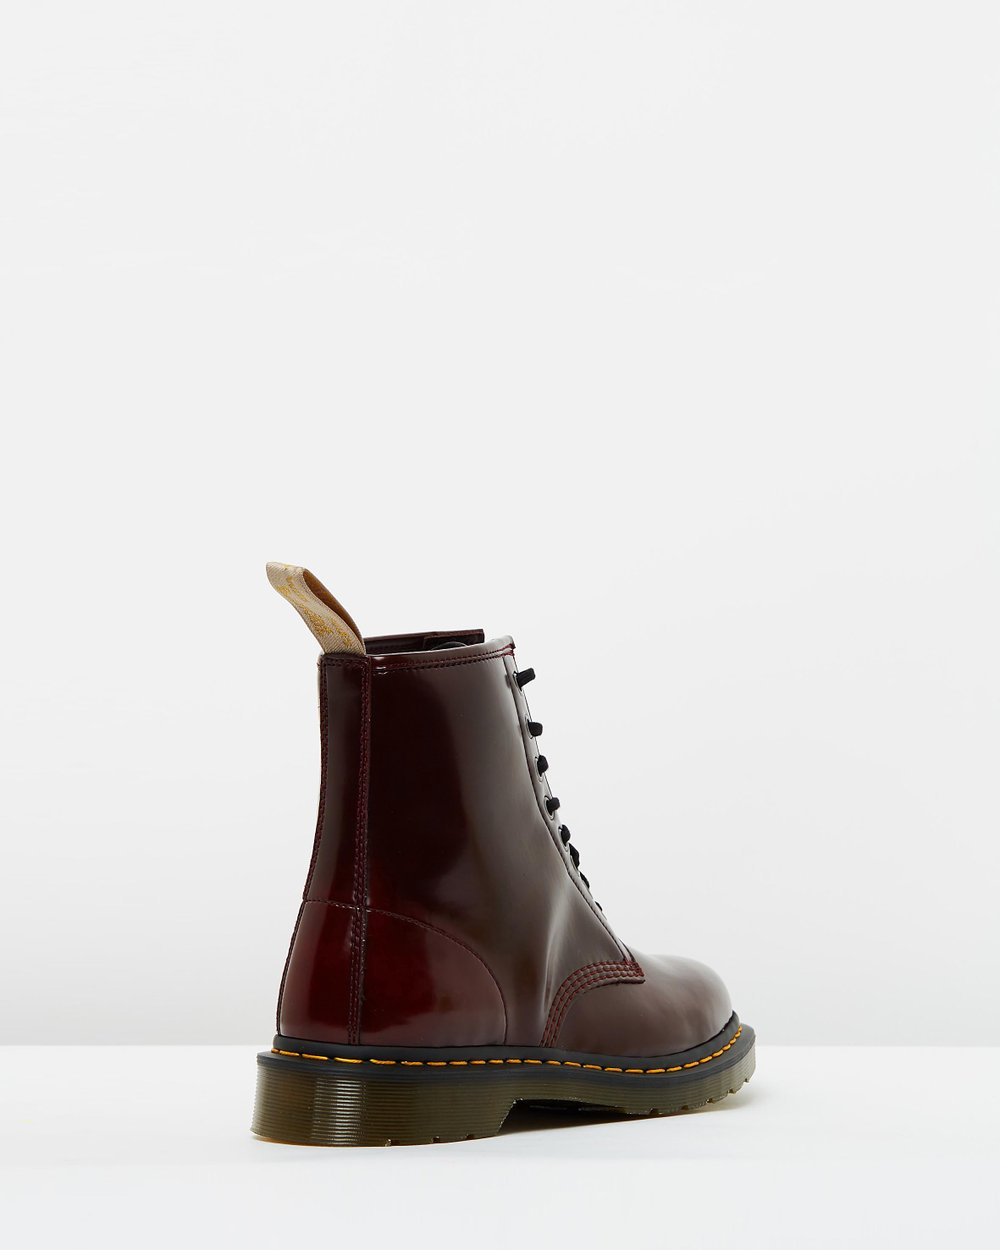 942232a211ae Vegan 1460 8-Eye Boots - Unisex by Dr Martens Online | THE ICONIC |  Australia